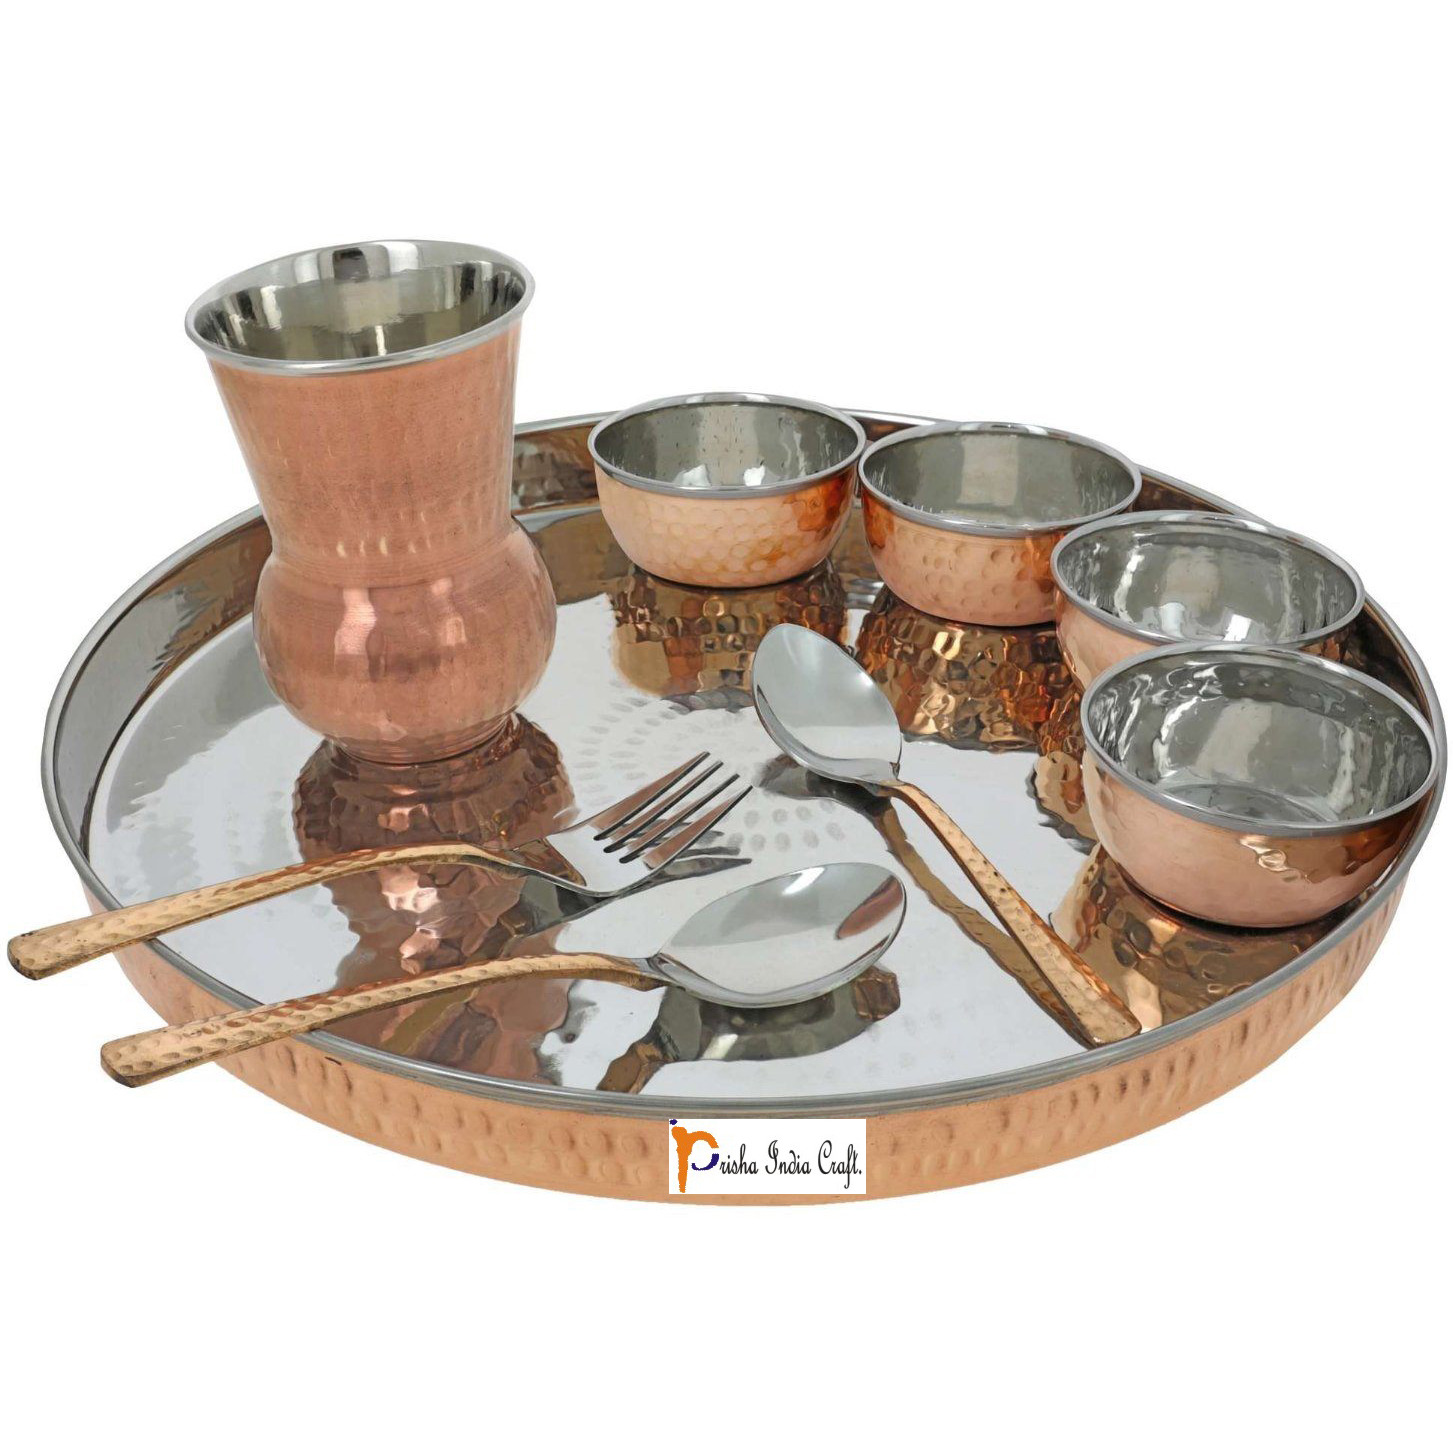 Prisha India Craft B. Dinnerware Traditional Stainless Steel Copper Dinner Set of Thali Plate, Bowls, Glass and Spoons, Dia 13  With 1 Pure Copper Pitcher Jug - Christmas Gift